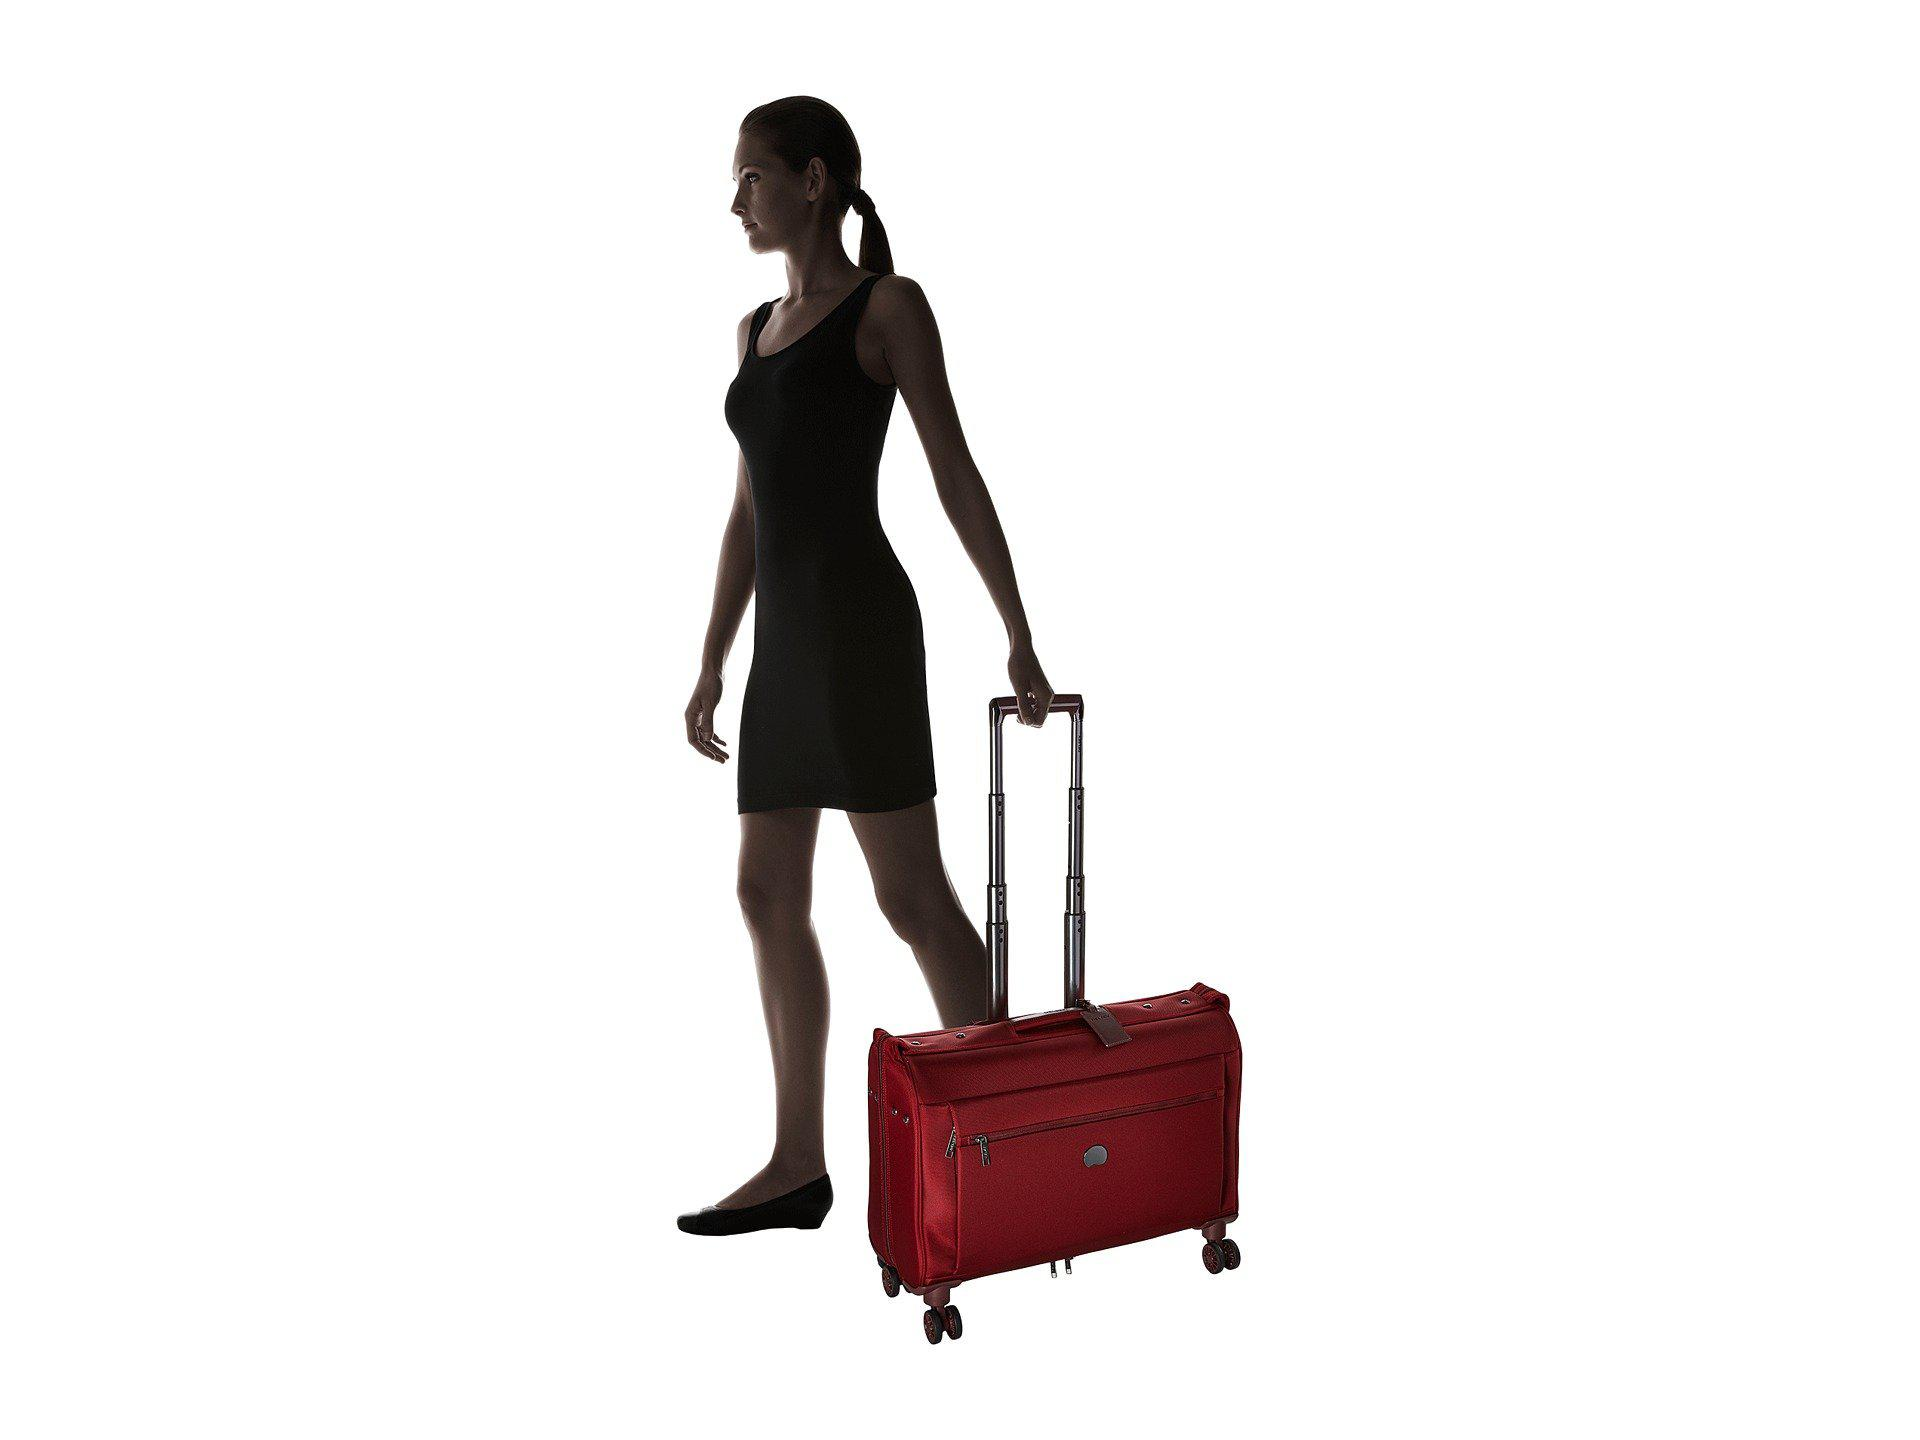 e92373268d Delsey - Red Montmartre Carry-on Spinner Trolley Garment Bag (bordeaux)  Luggage -. View fullscreen